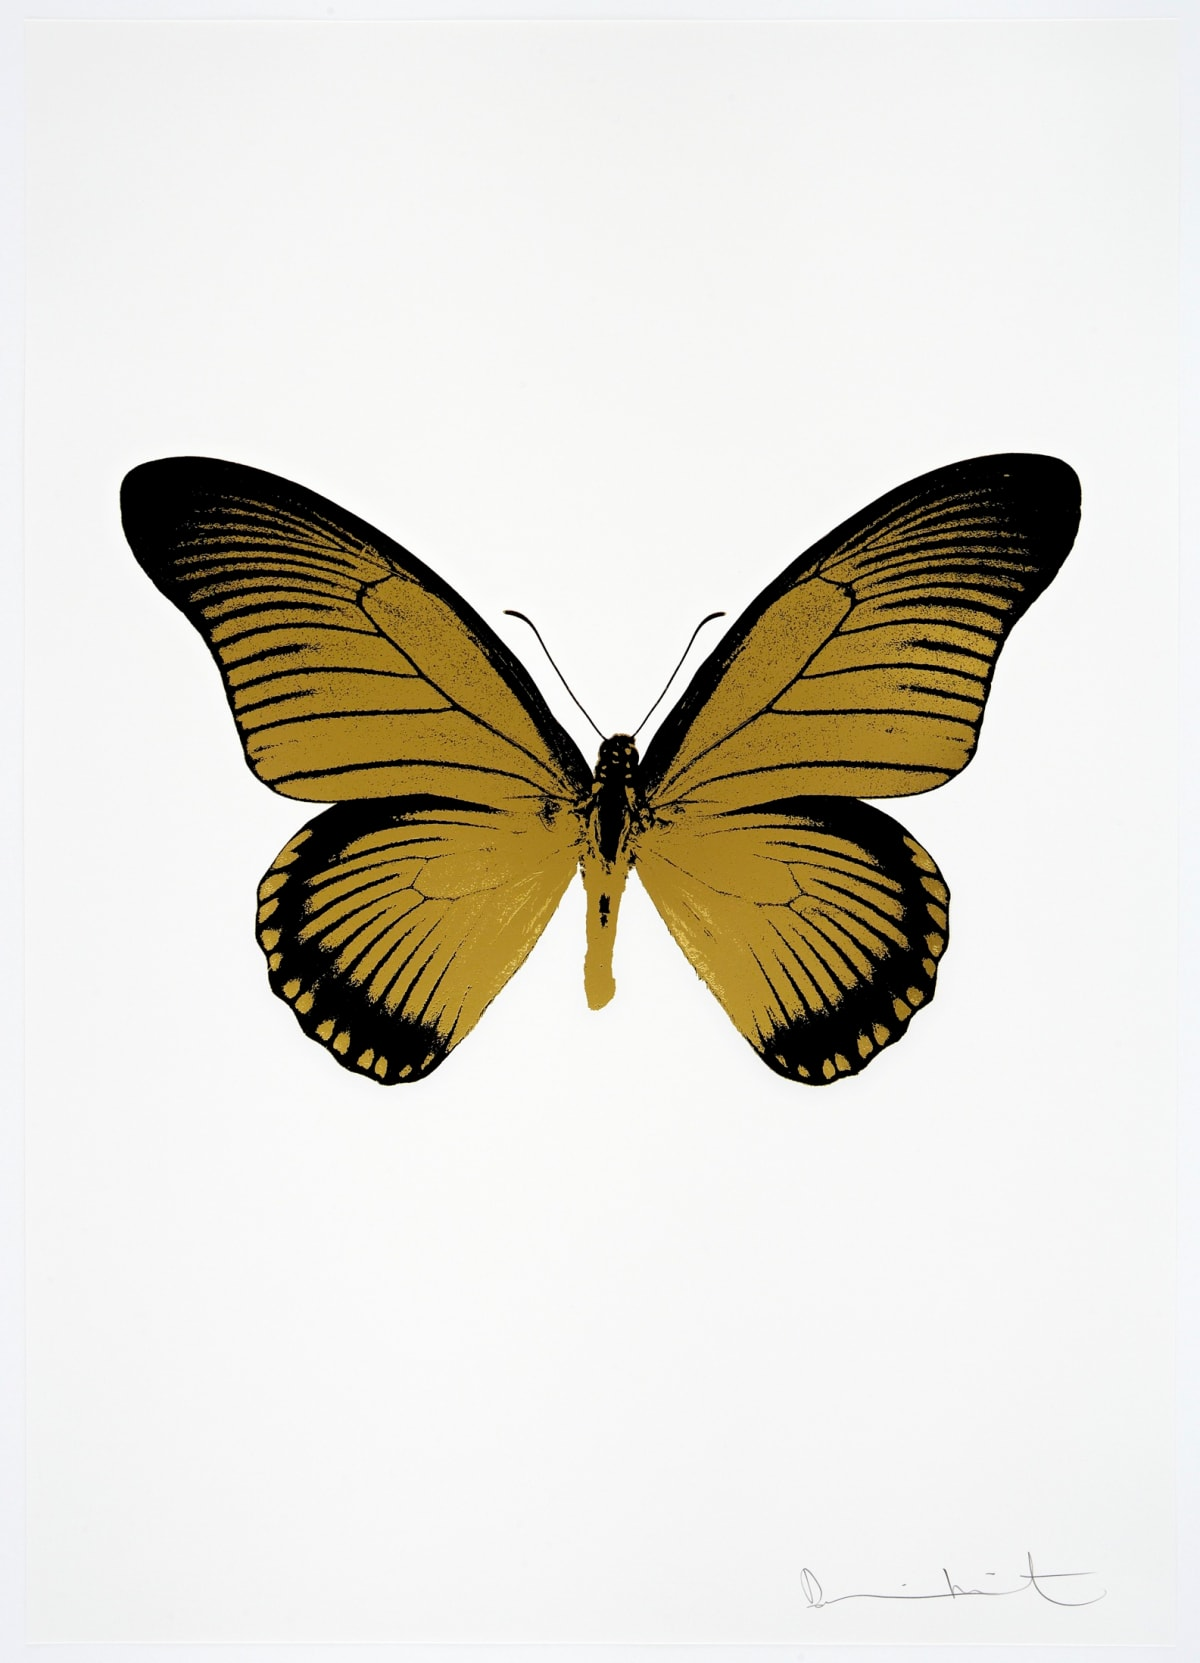 Damien Hirst The Souls IV - Oriental Gold/Raven Black, 2010 2 colour foil block on 300gsm Arches 88 archival paper. Signed and numbered. Published by Paul Stolper and Other Criteria 72 x 51cm OC8012 / 1418-35 Edition of 15